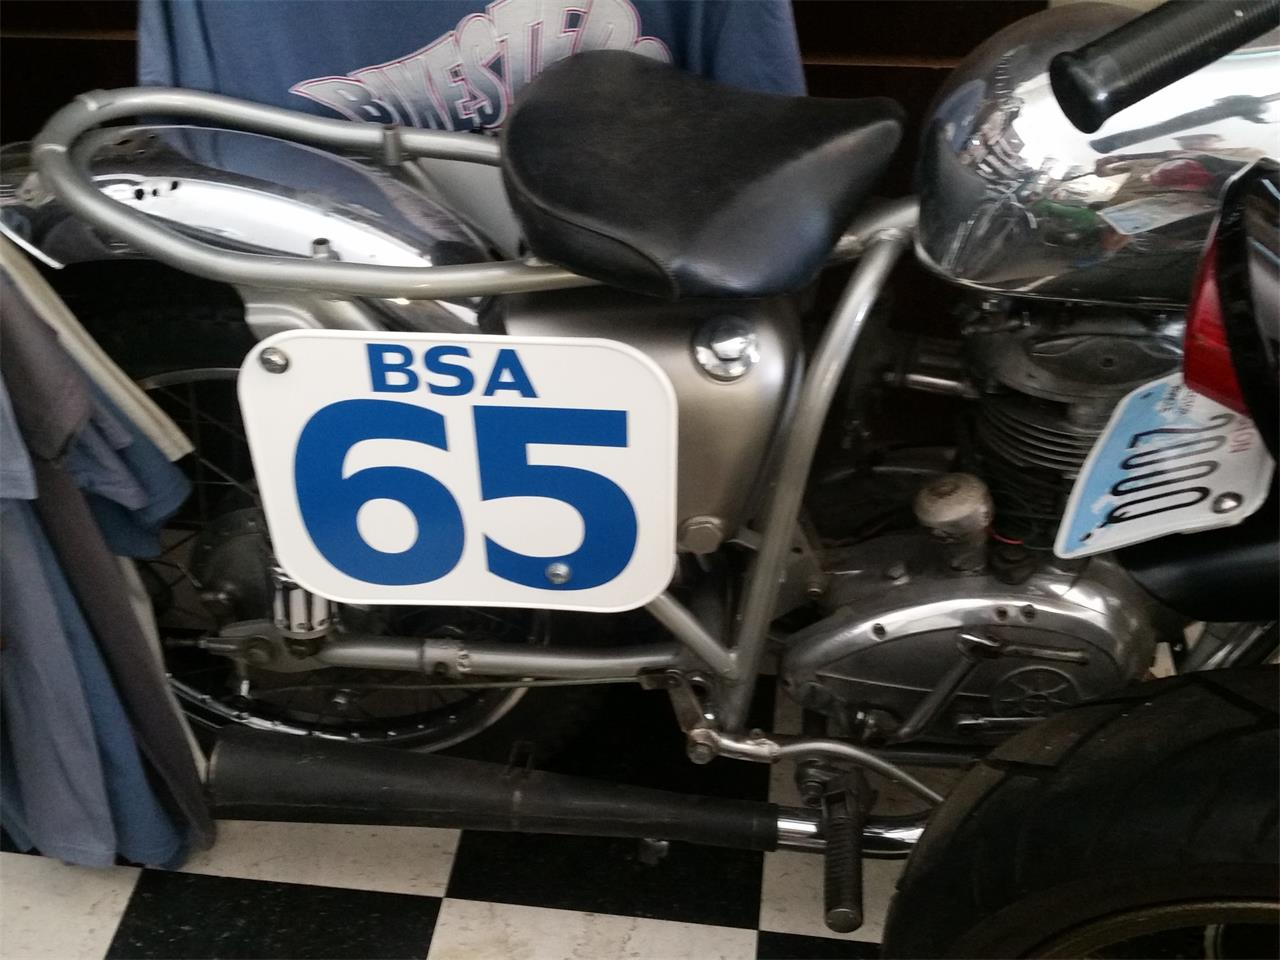 1965 BSA Motorcycle (CC-1193657) for sale in Carnation, Washington